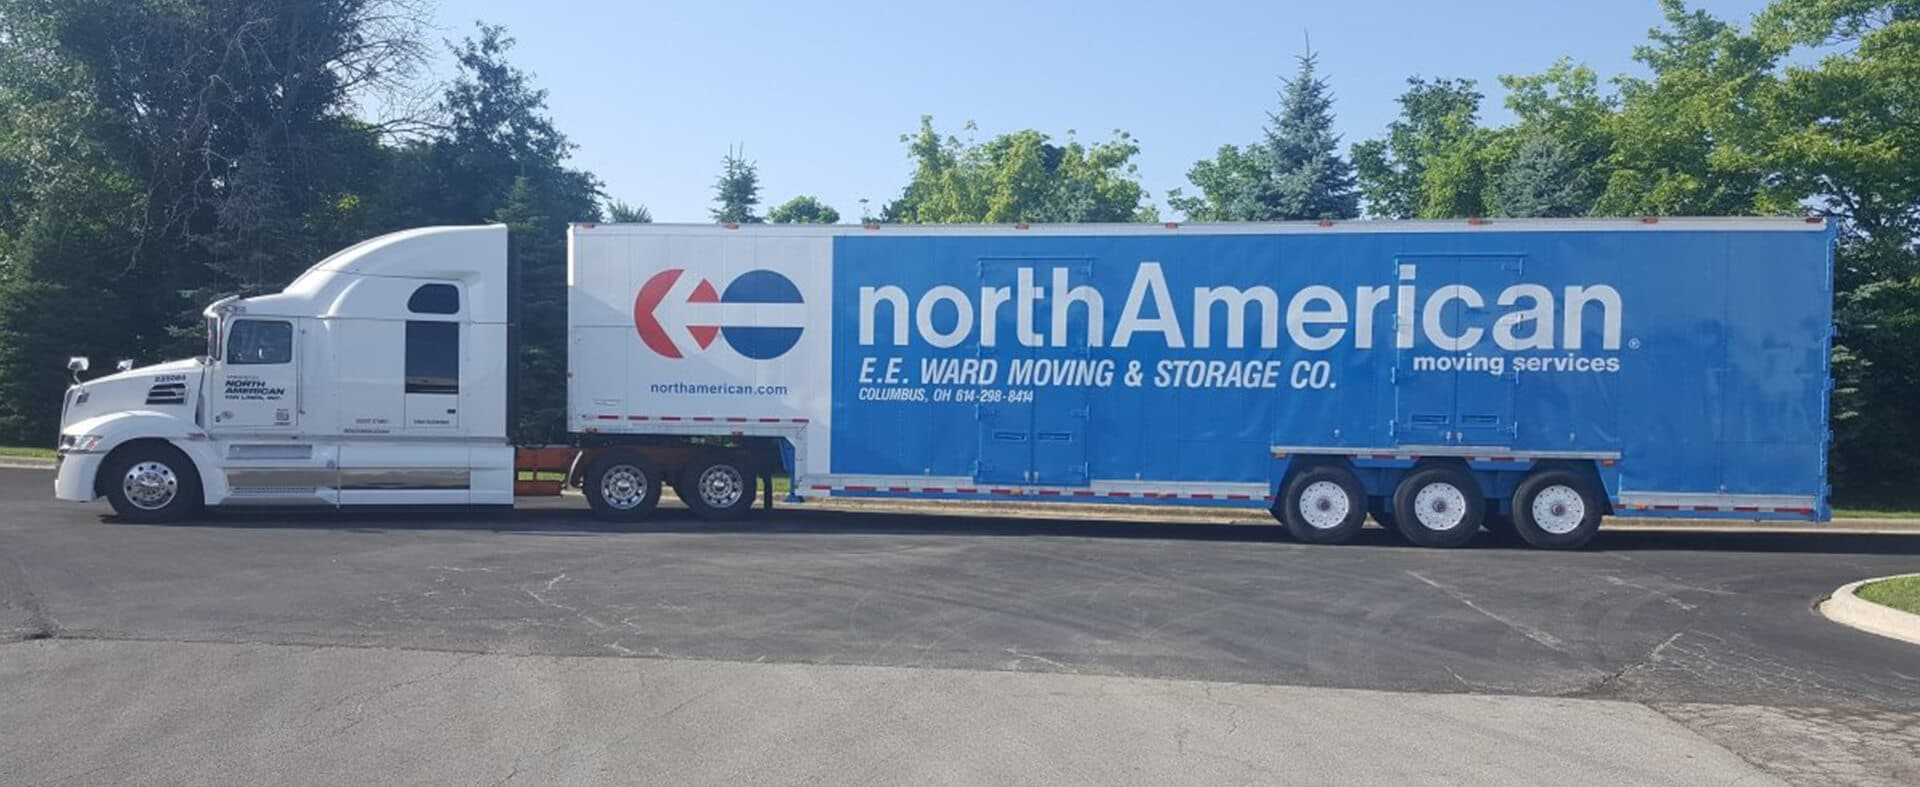 EE Ward Moving truck